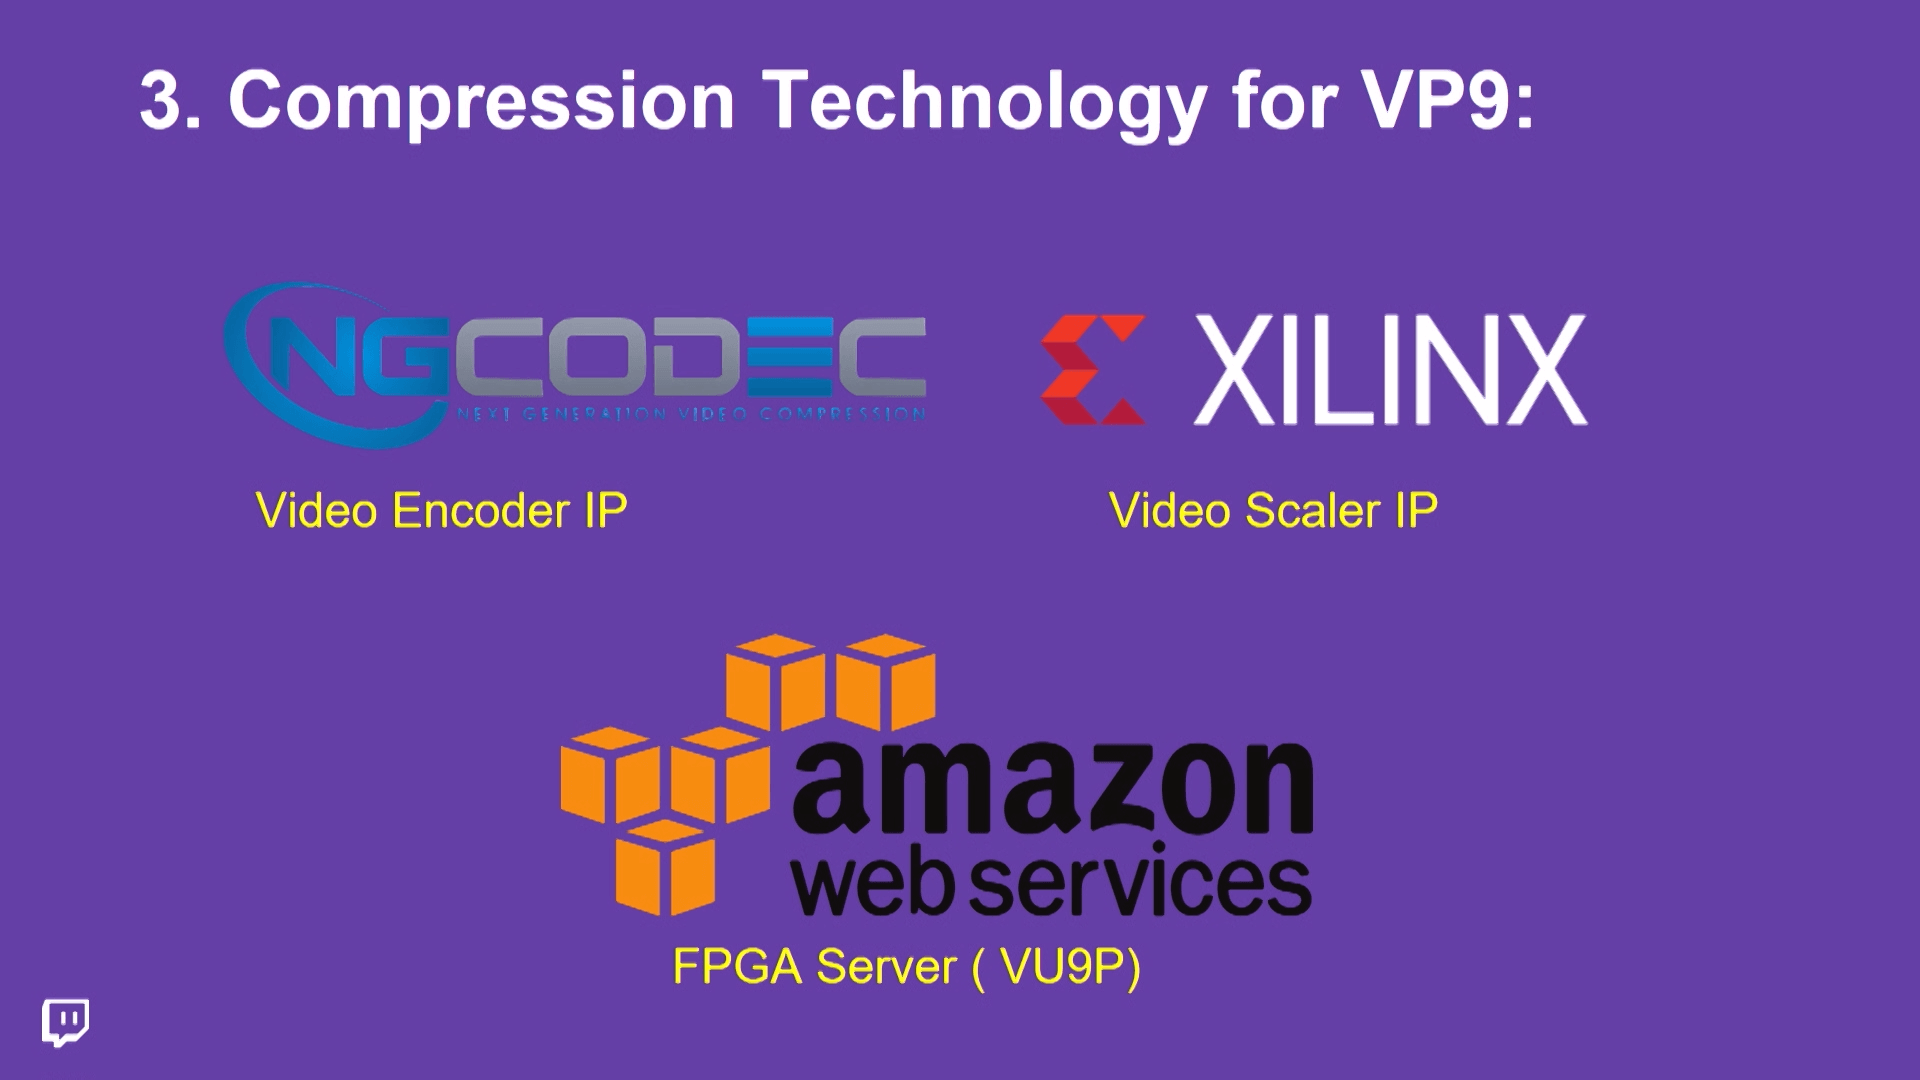 AWS, NGCodec, Xilinx, and VP9